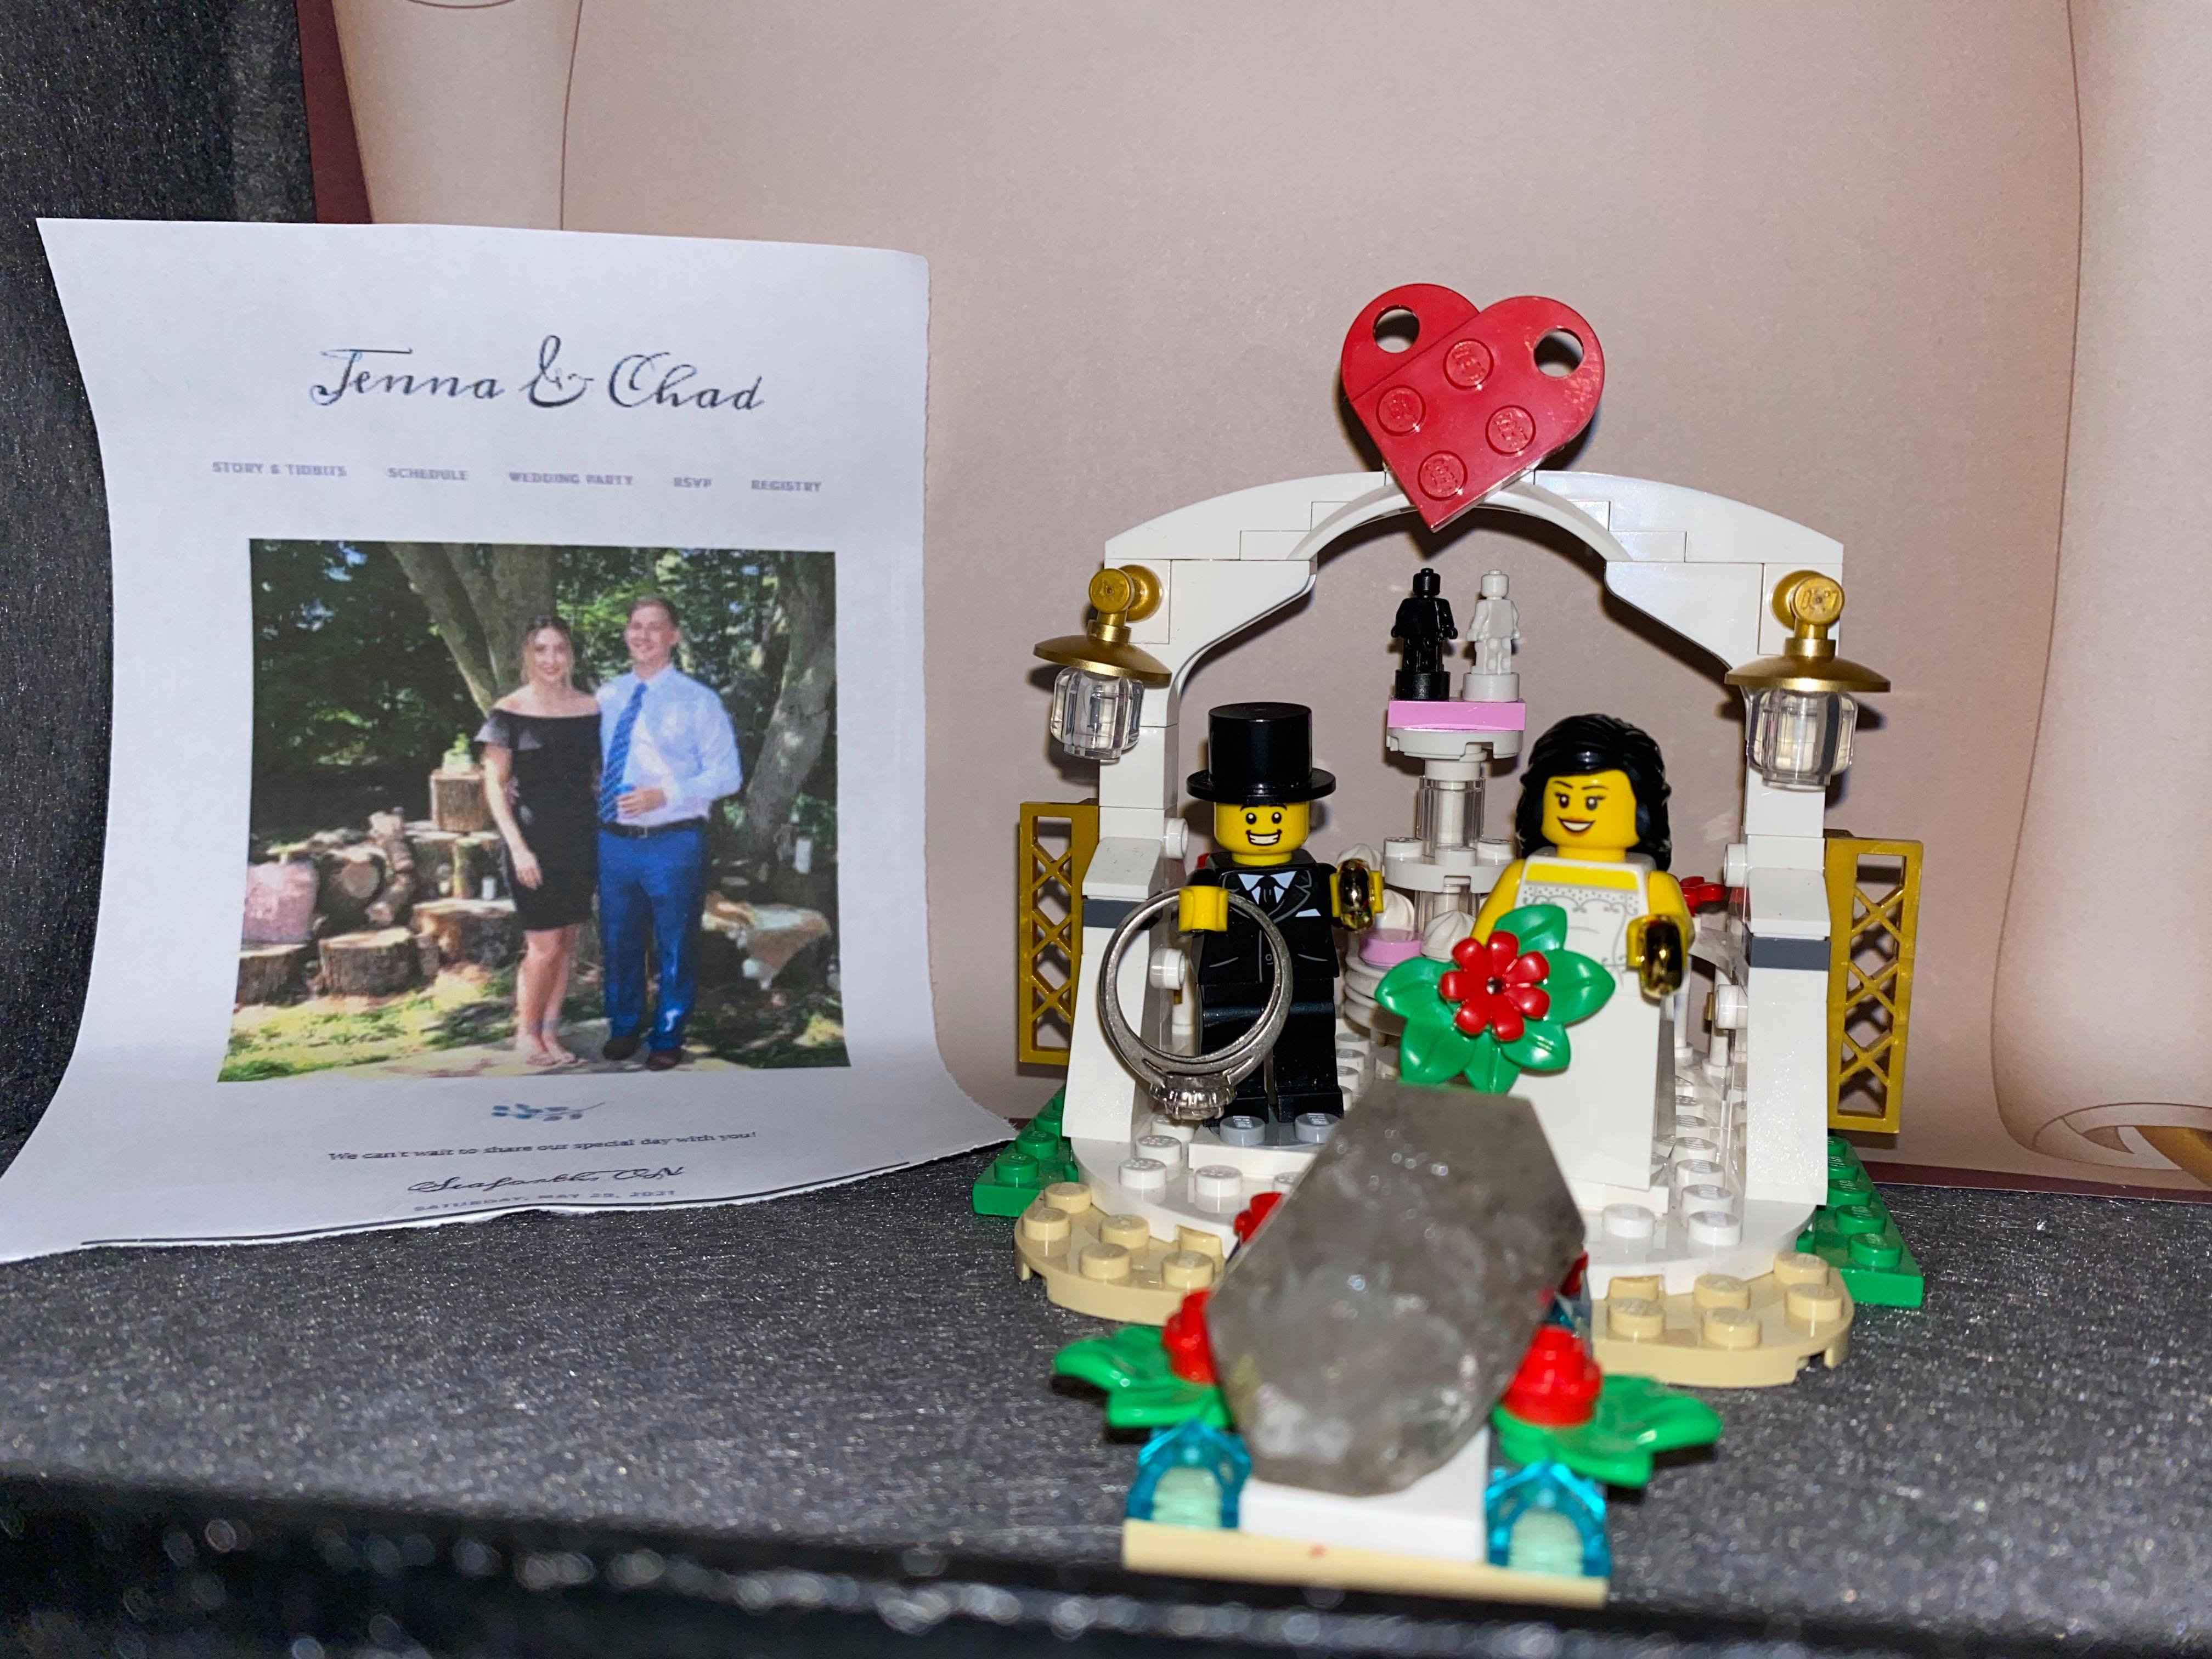 The lego Bride and Groom